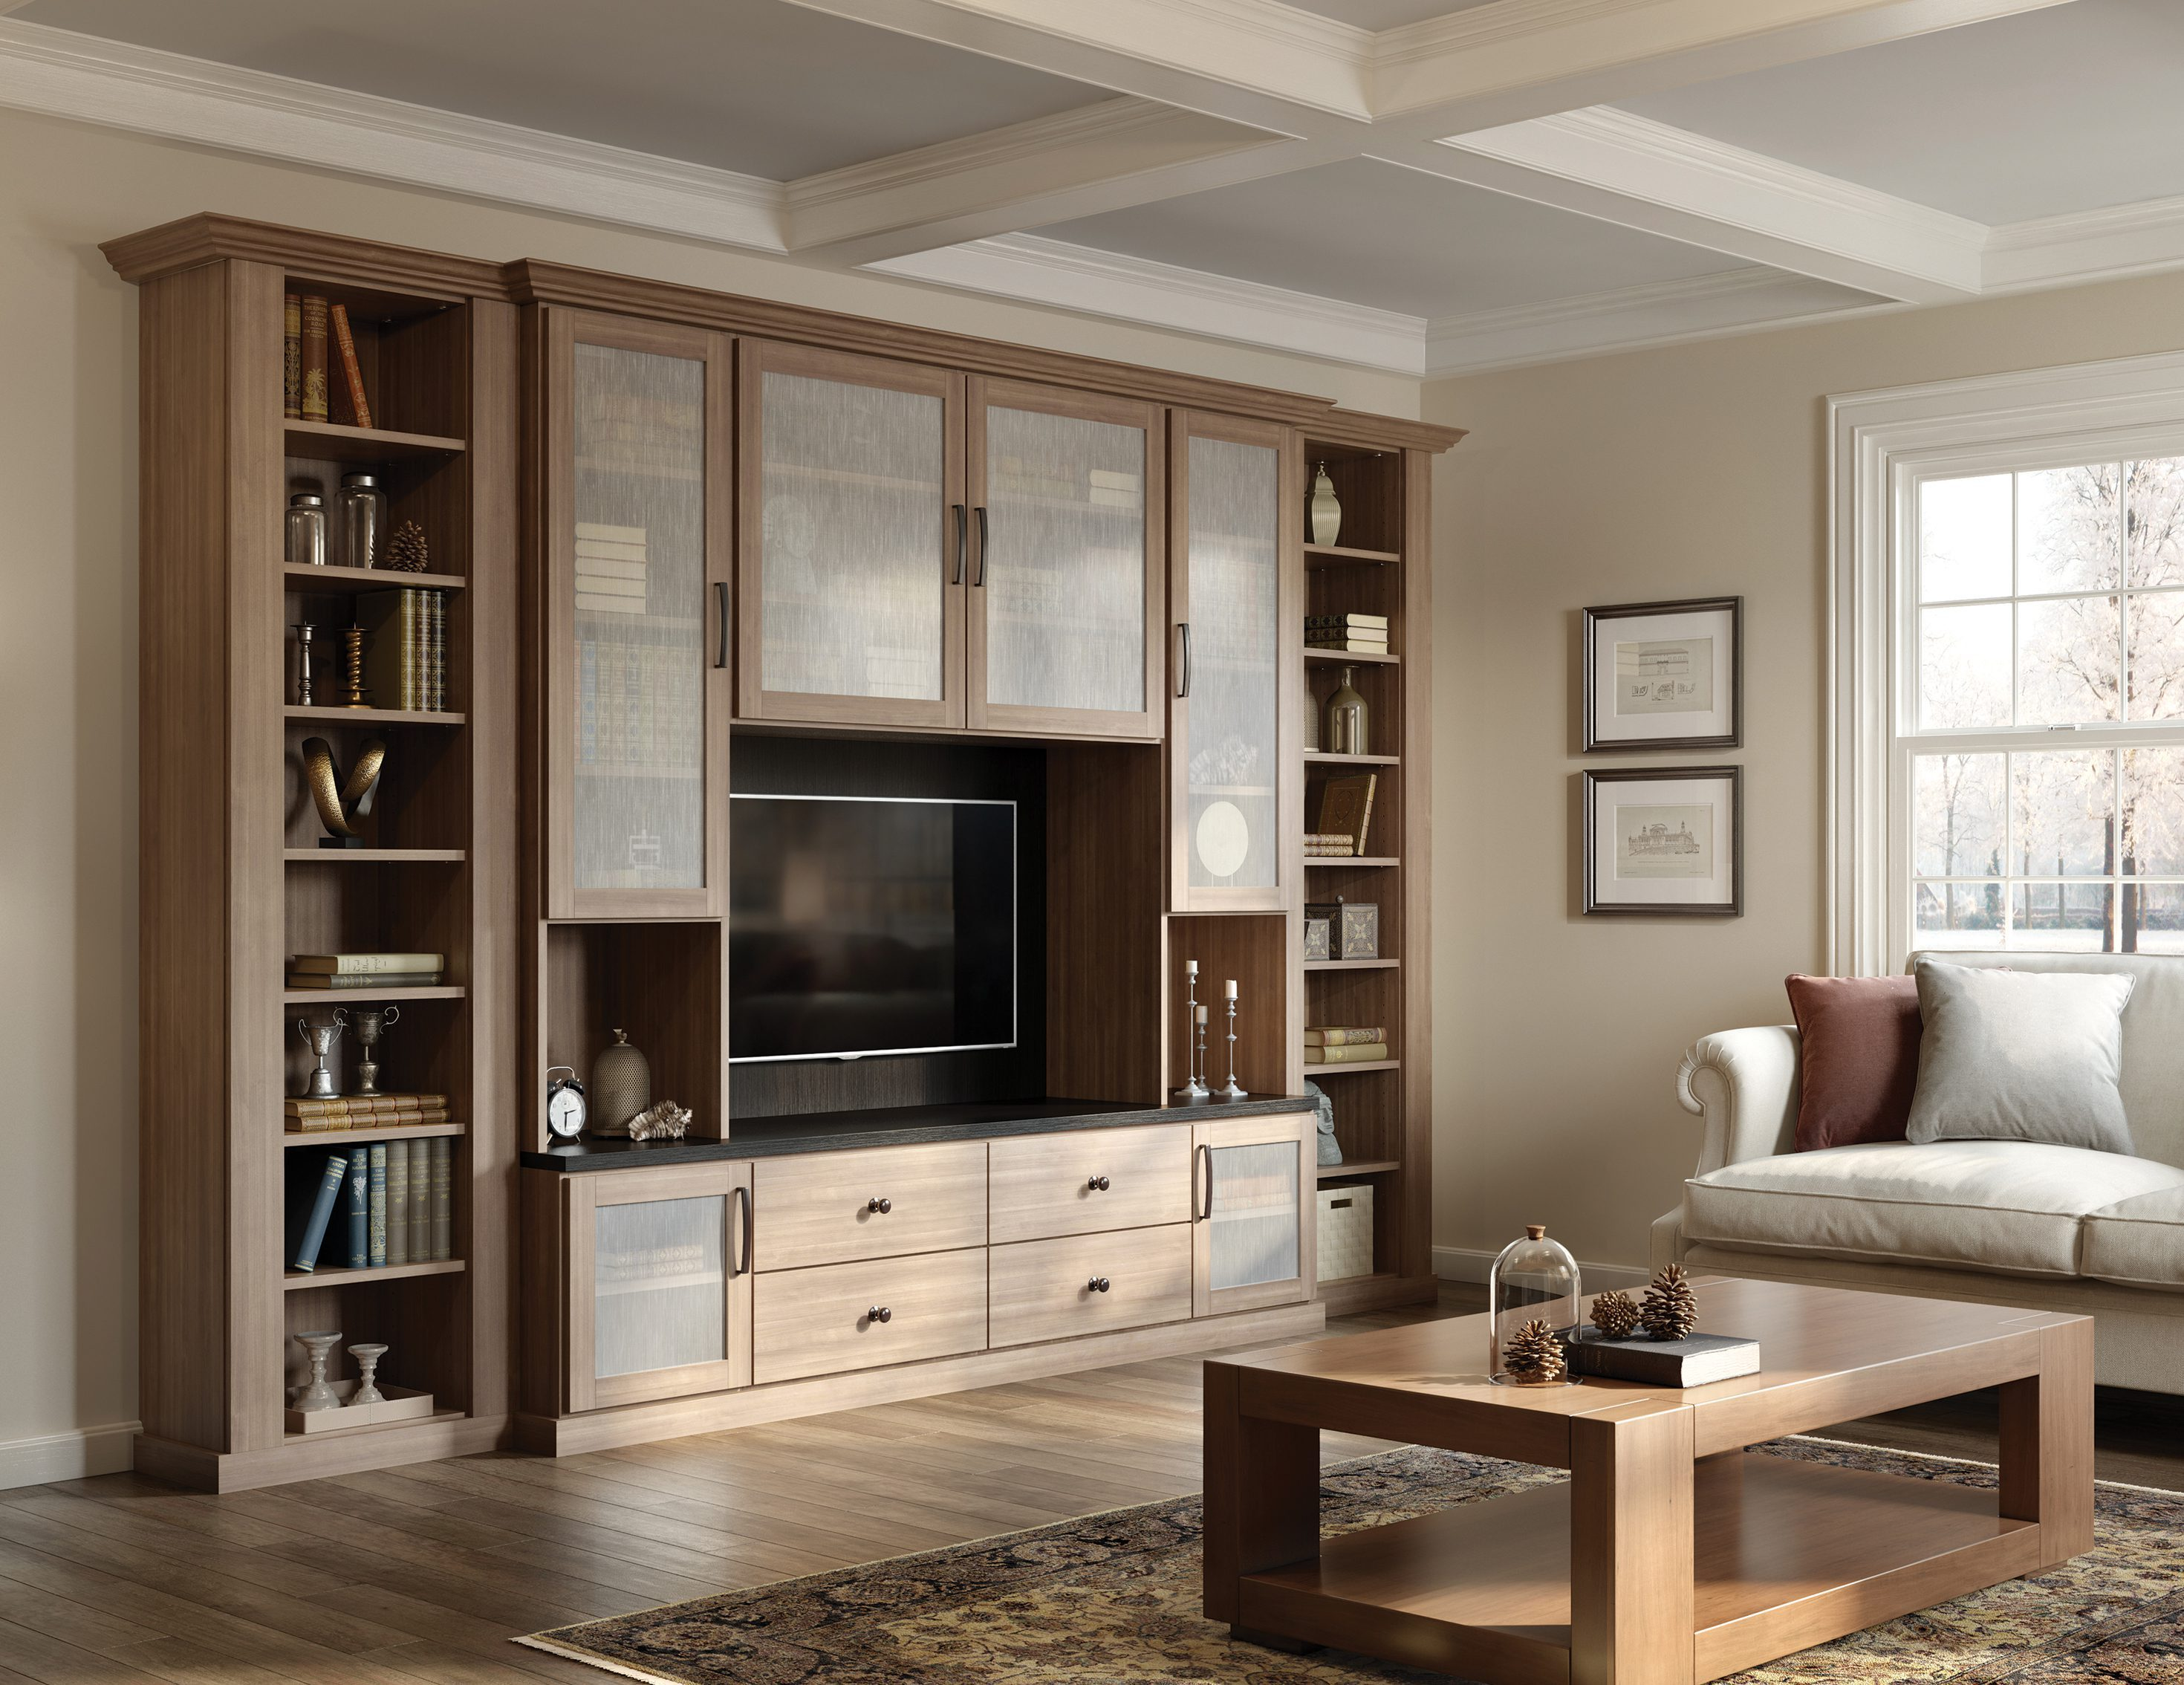 Photos Of Living Room Designs Family Room Storage Living Room Design Ideas By California Closets